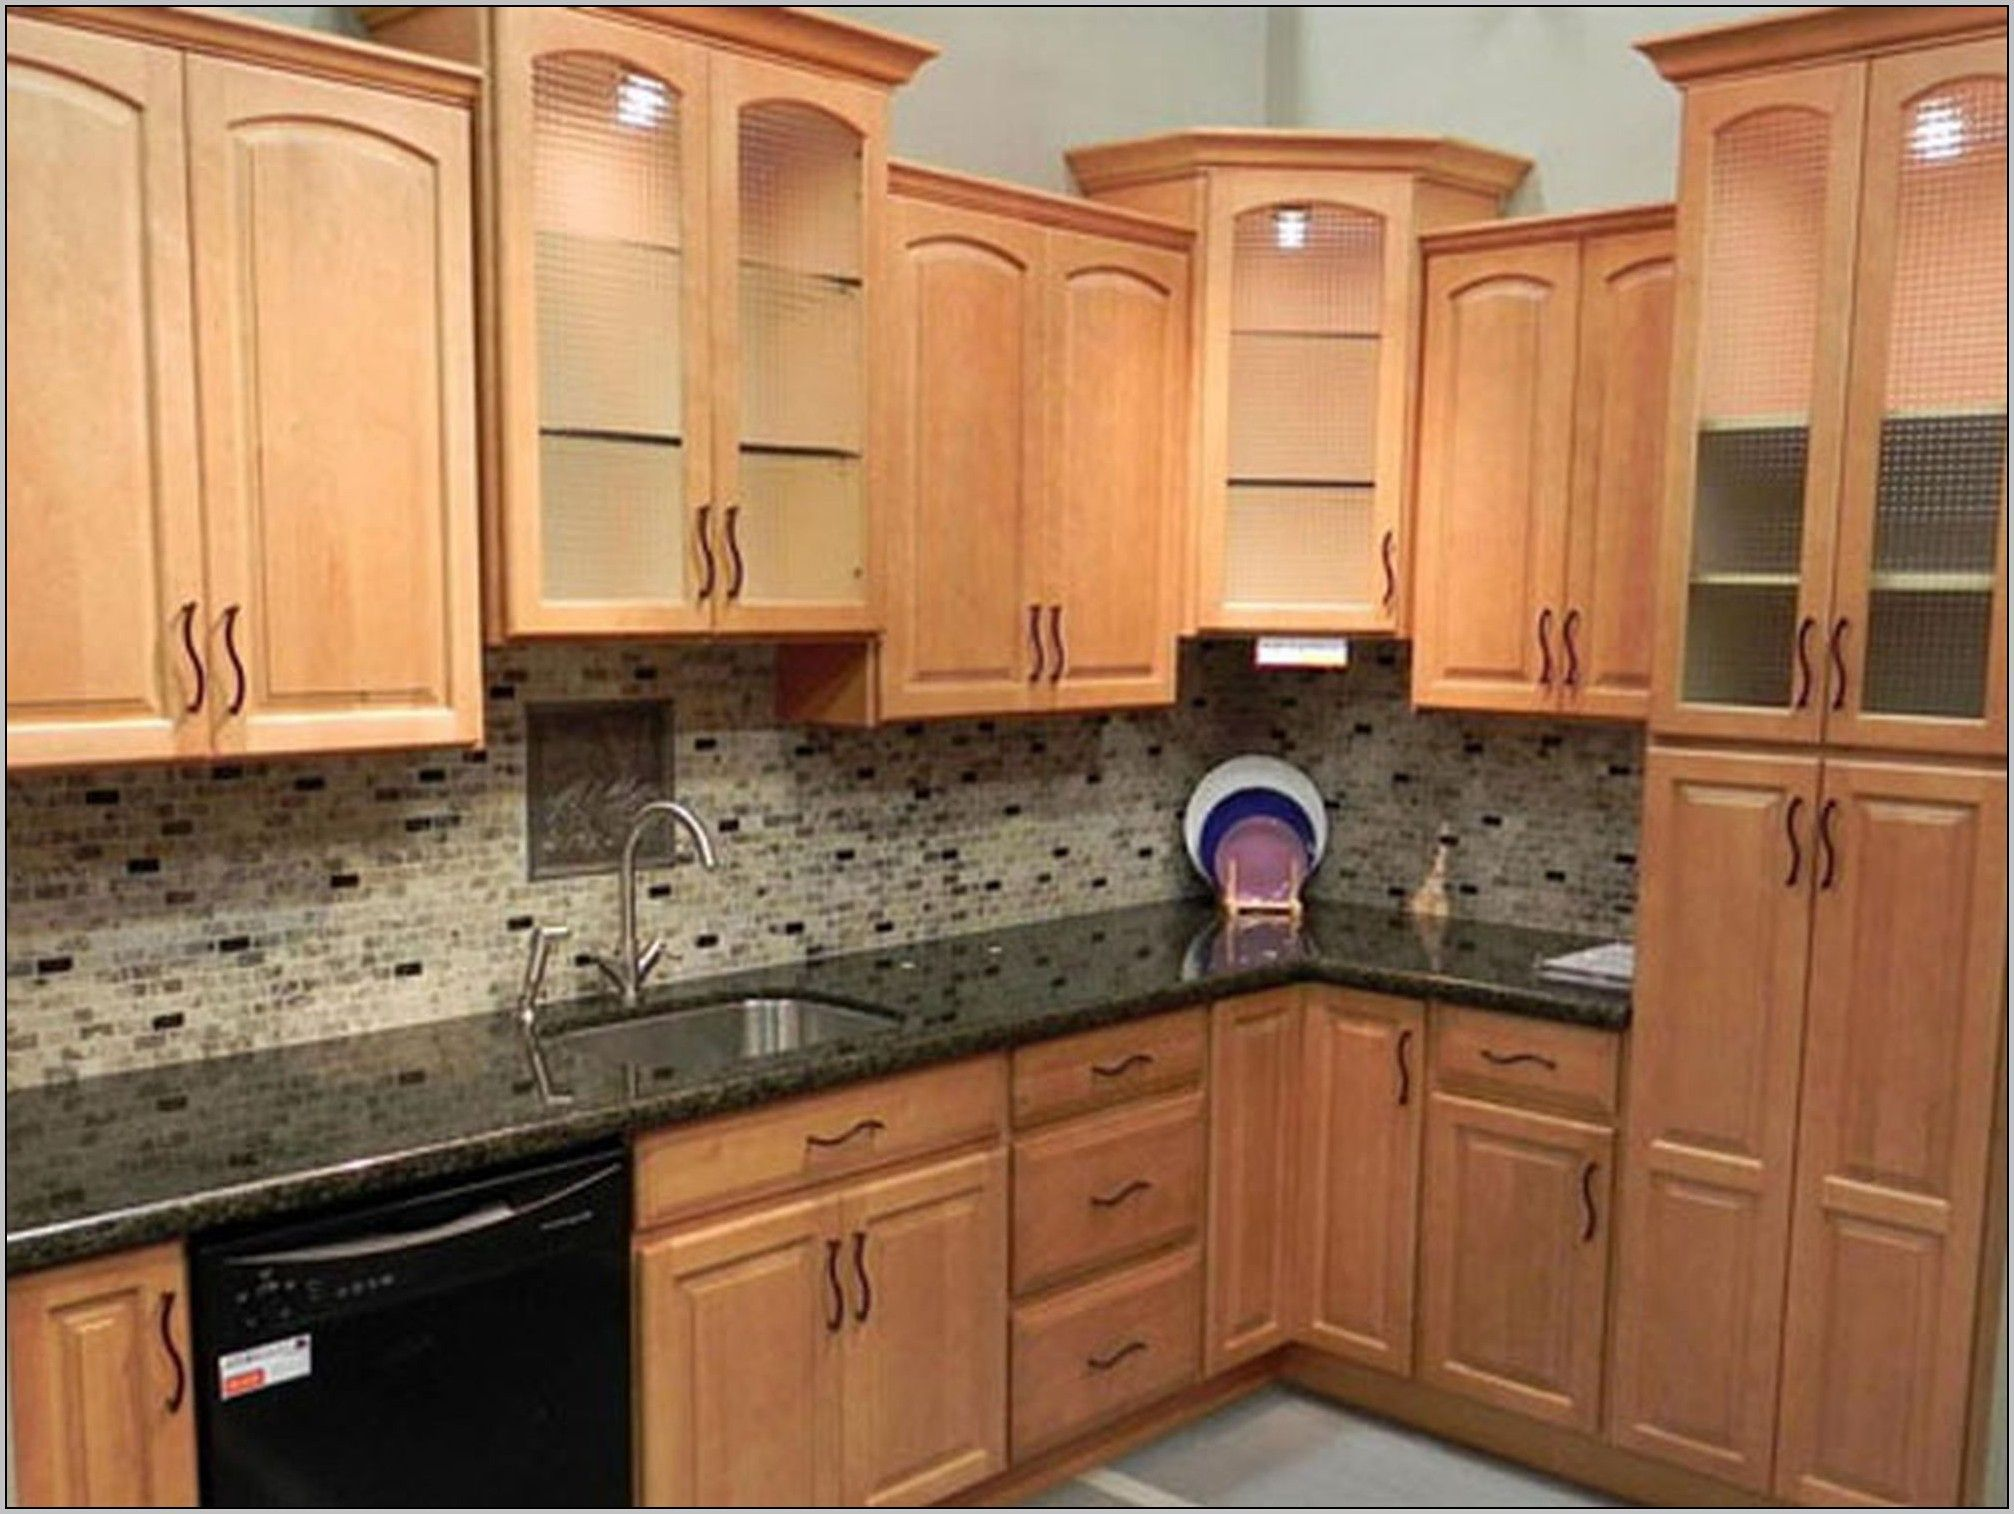 Best Backsplash For Maple Cabinets Google Search New Home New